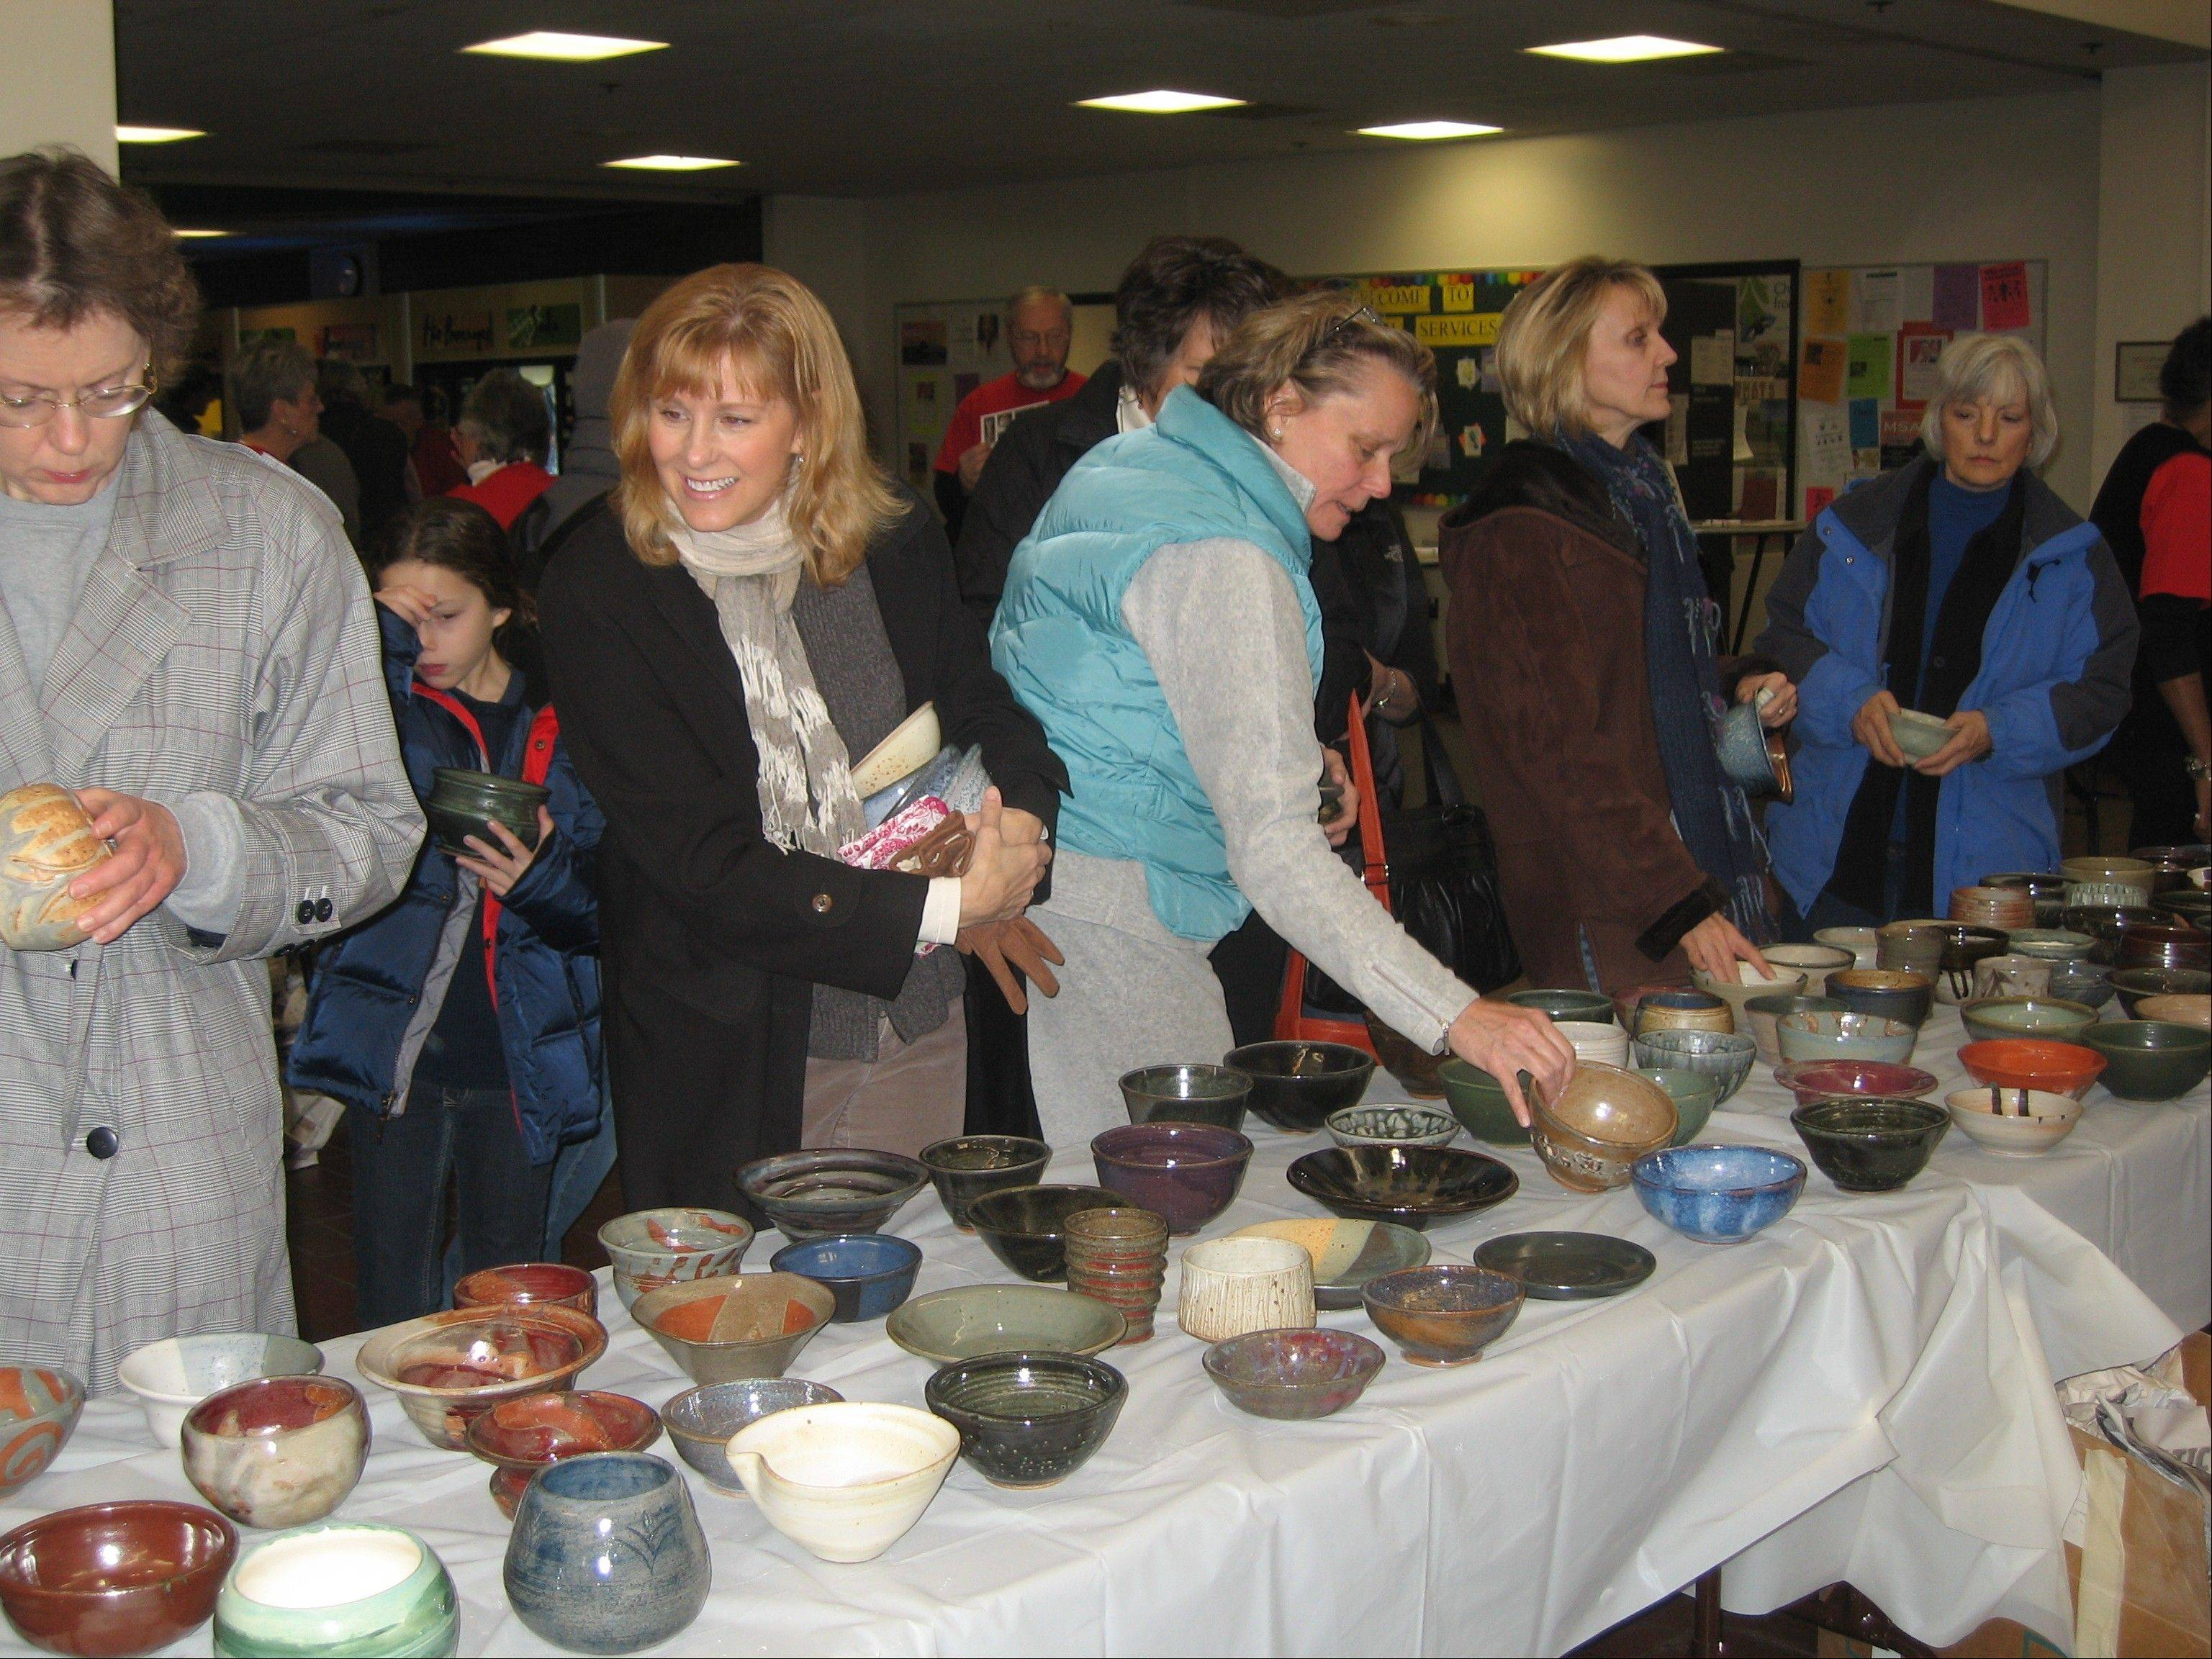 Patrons of last year's Empty Bowls fundraiser at Oakton Community College choose lunch bowls from a wide variety of handcrafted items. The Empty Bowls event celebrates its 10th anniversary on Dec. 7, when Oakton will once again host the fundraiser to raise awareness of worldwide hunger.